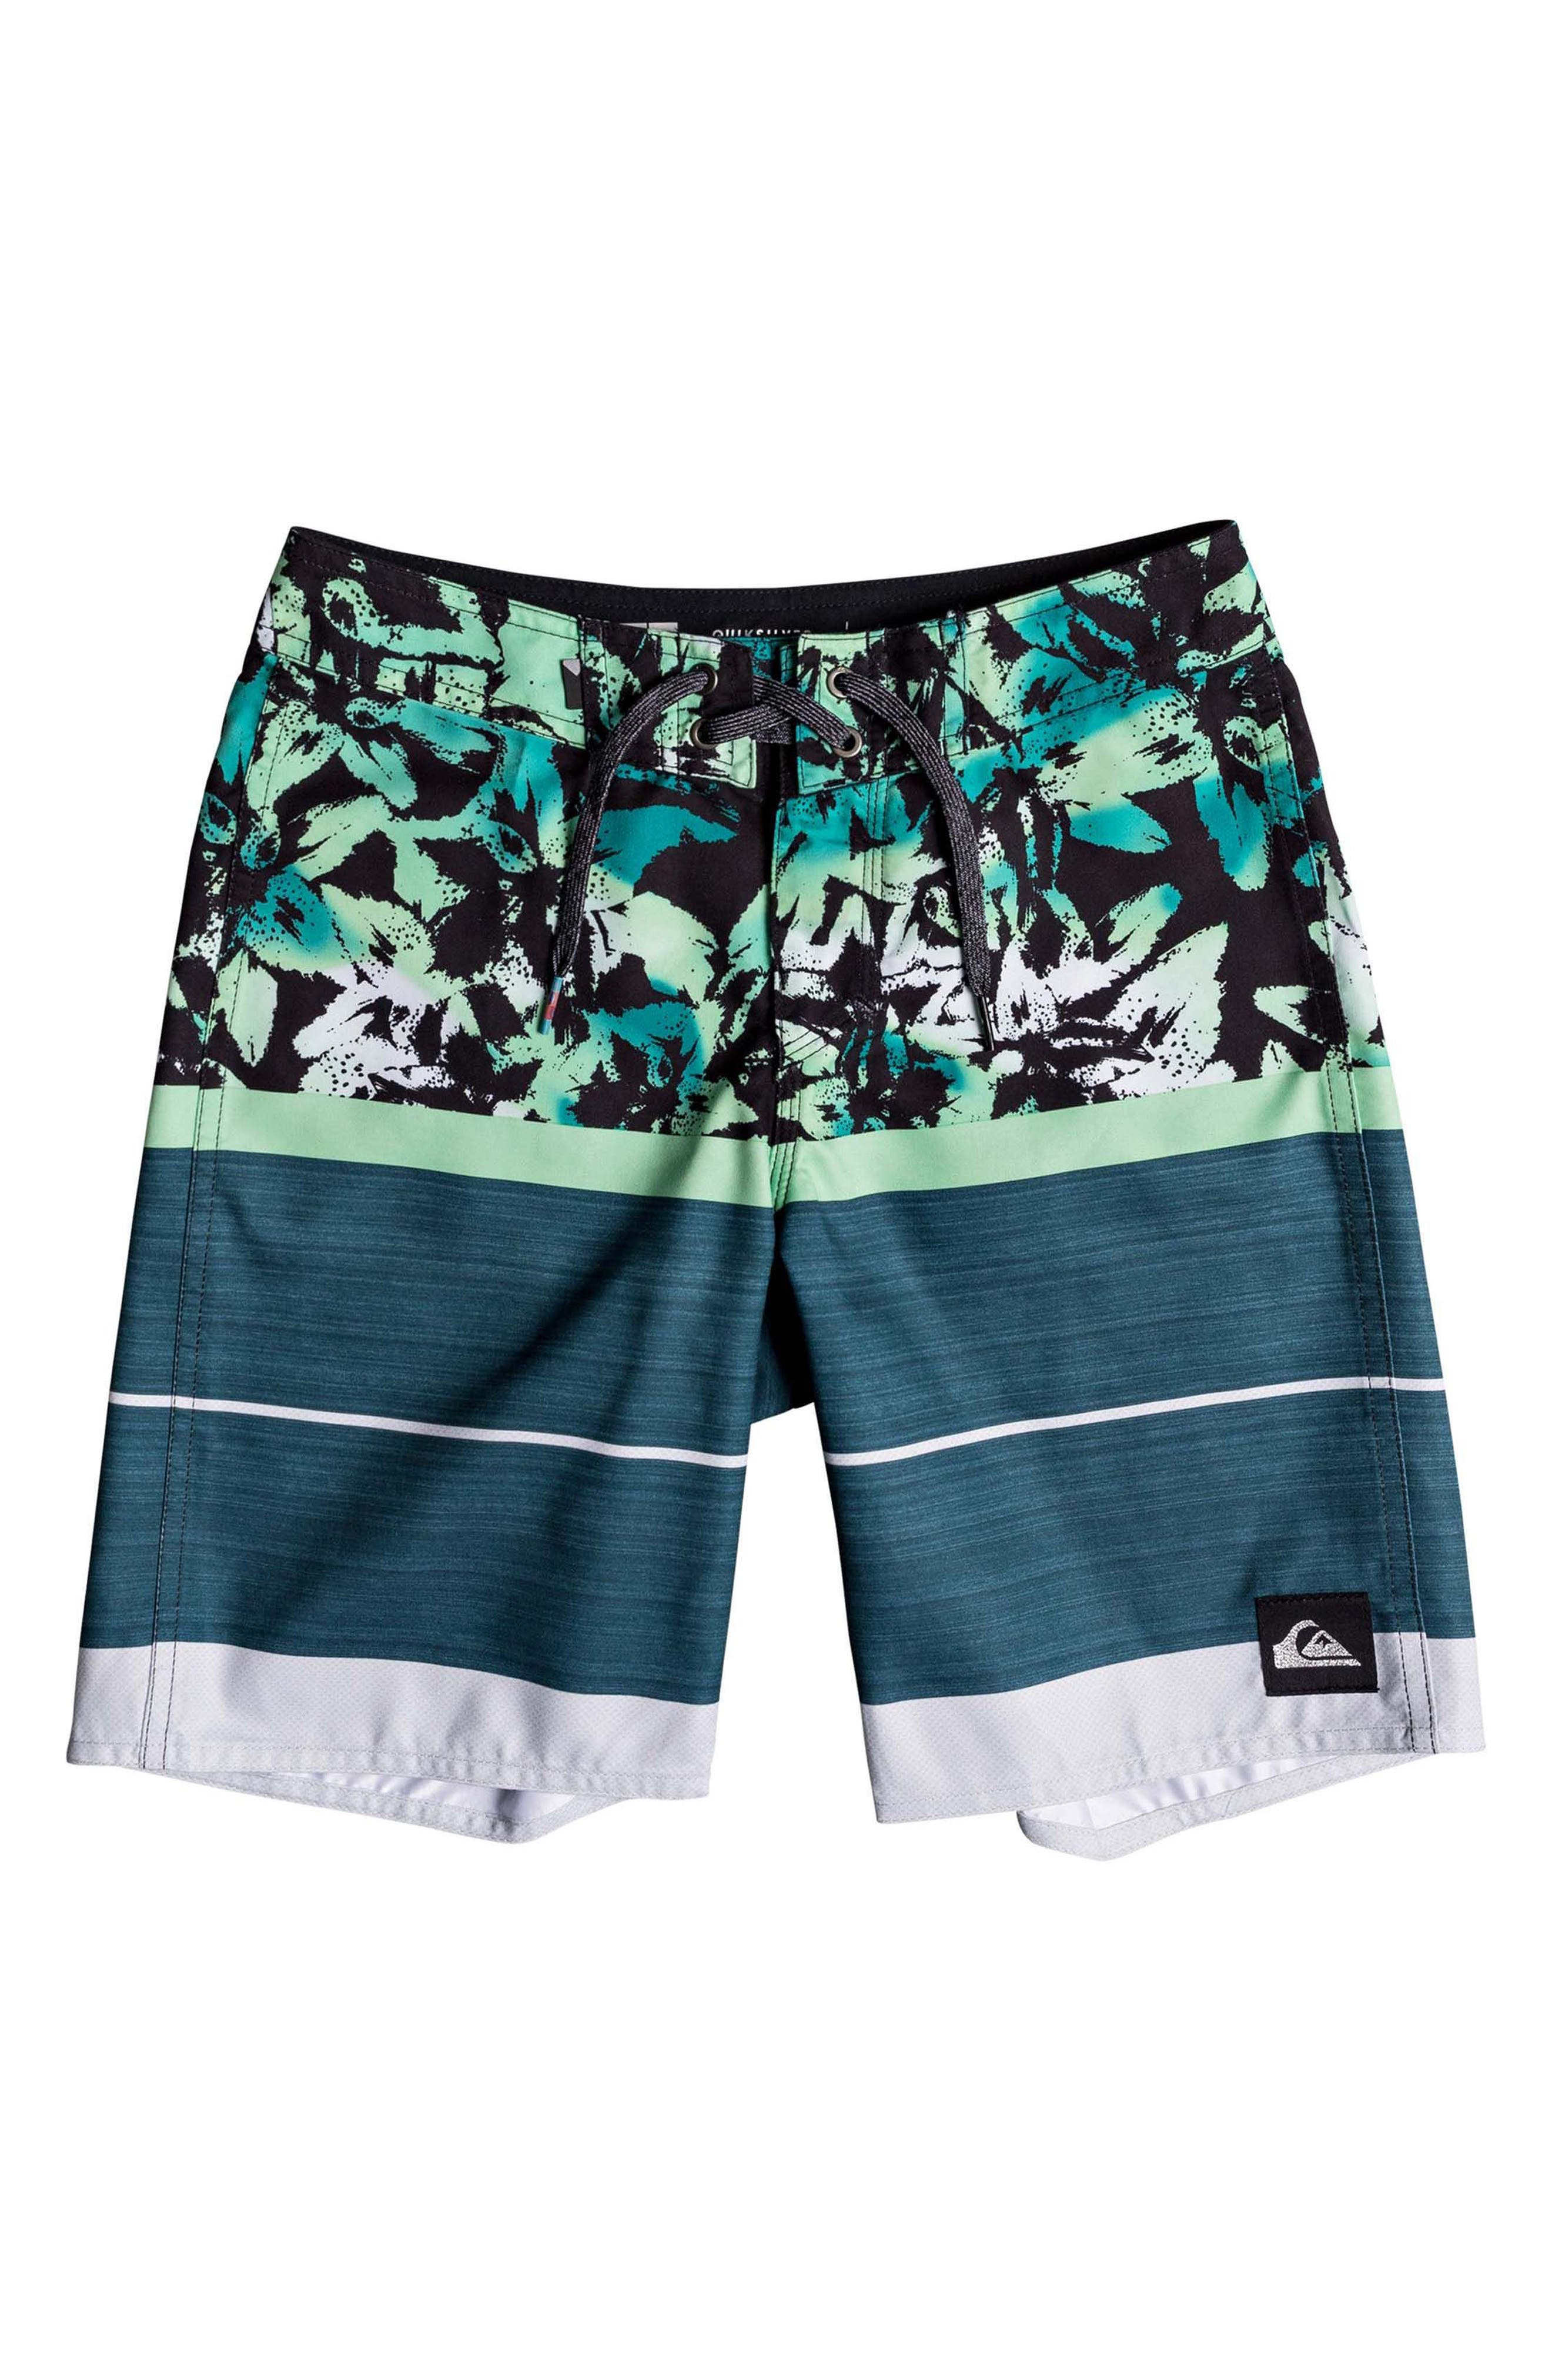 QUIKSILVER,                             Slab Island Board Shorts,                             Main thumbnail 1, color,                             406